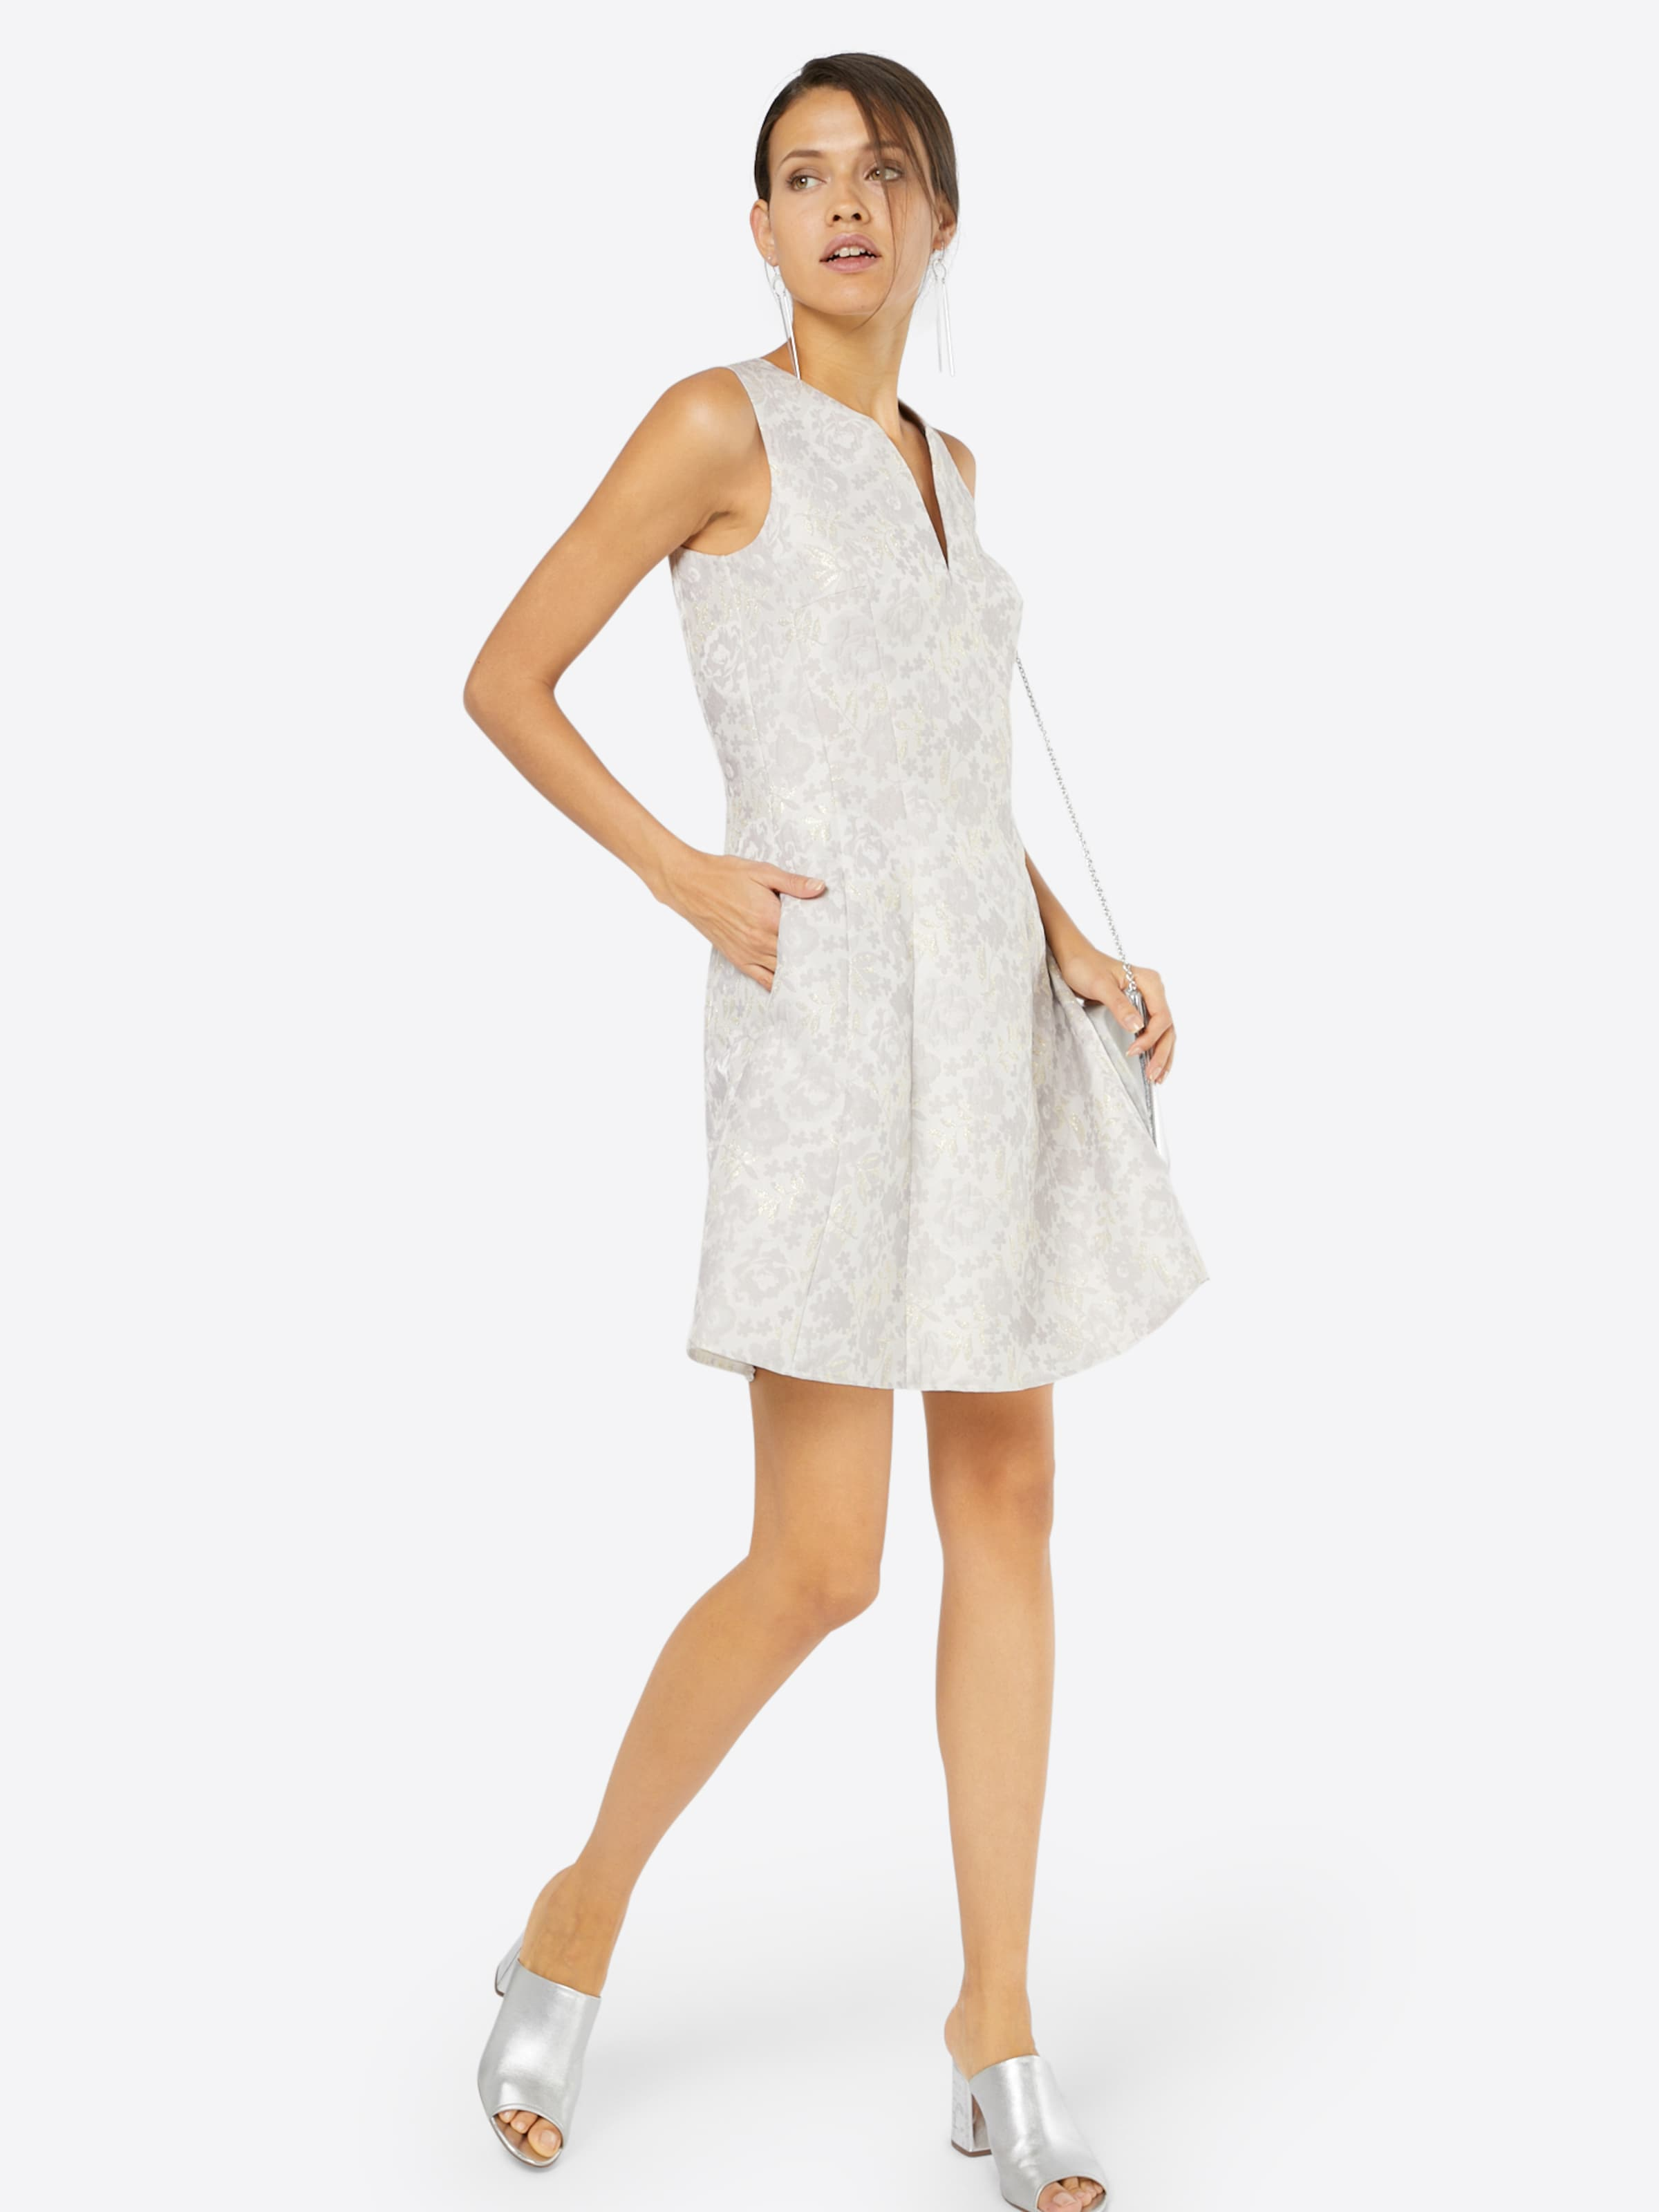 Cocktail En Swing De OrGris Blanc Robe qSVpUzM